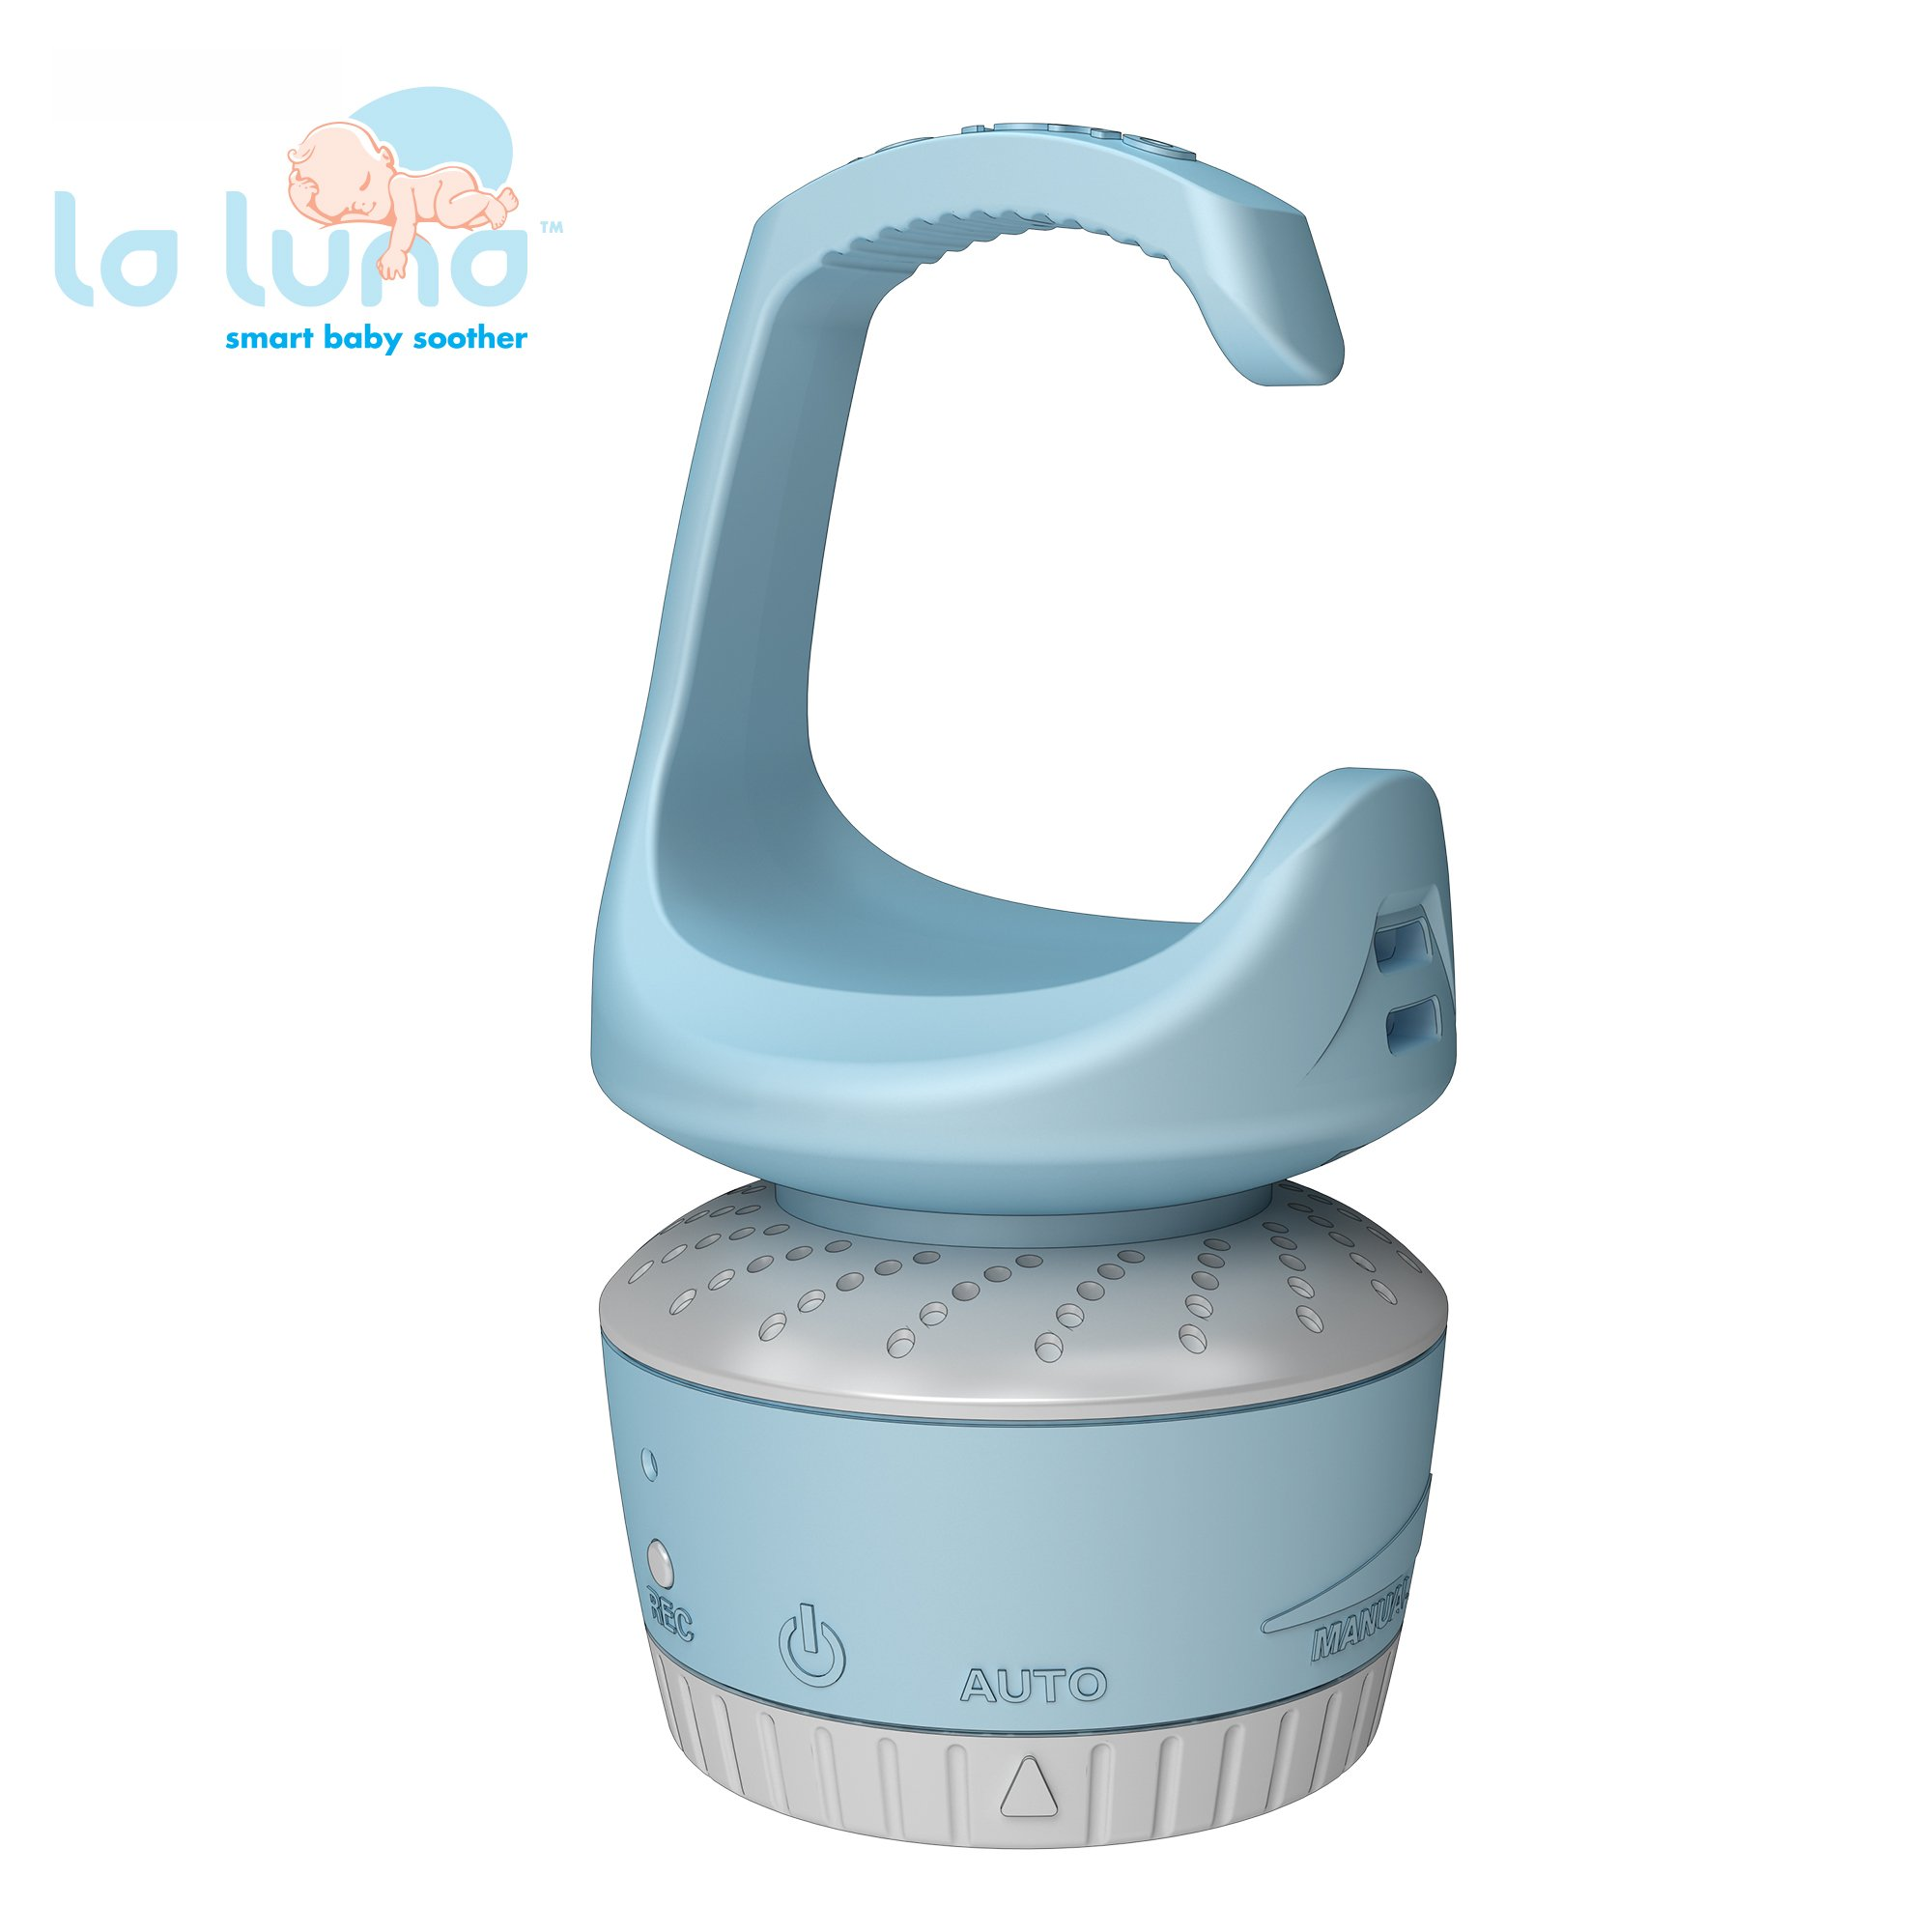 Baby Soother Back to Sleep Shusher Cry Sensor and Mommy Sound Recording Feature by LaLuna Baby